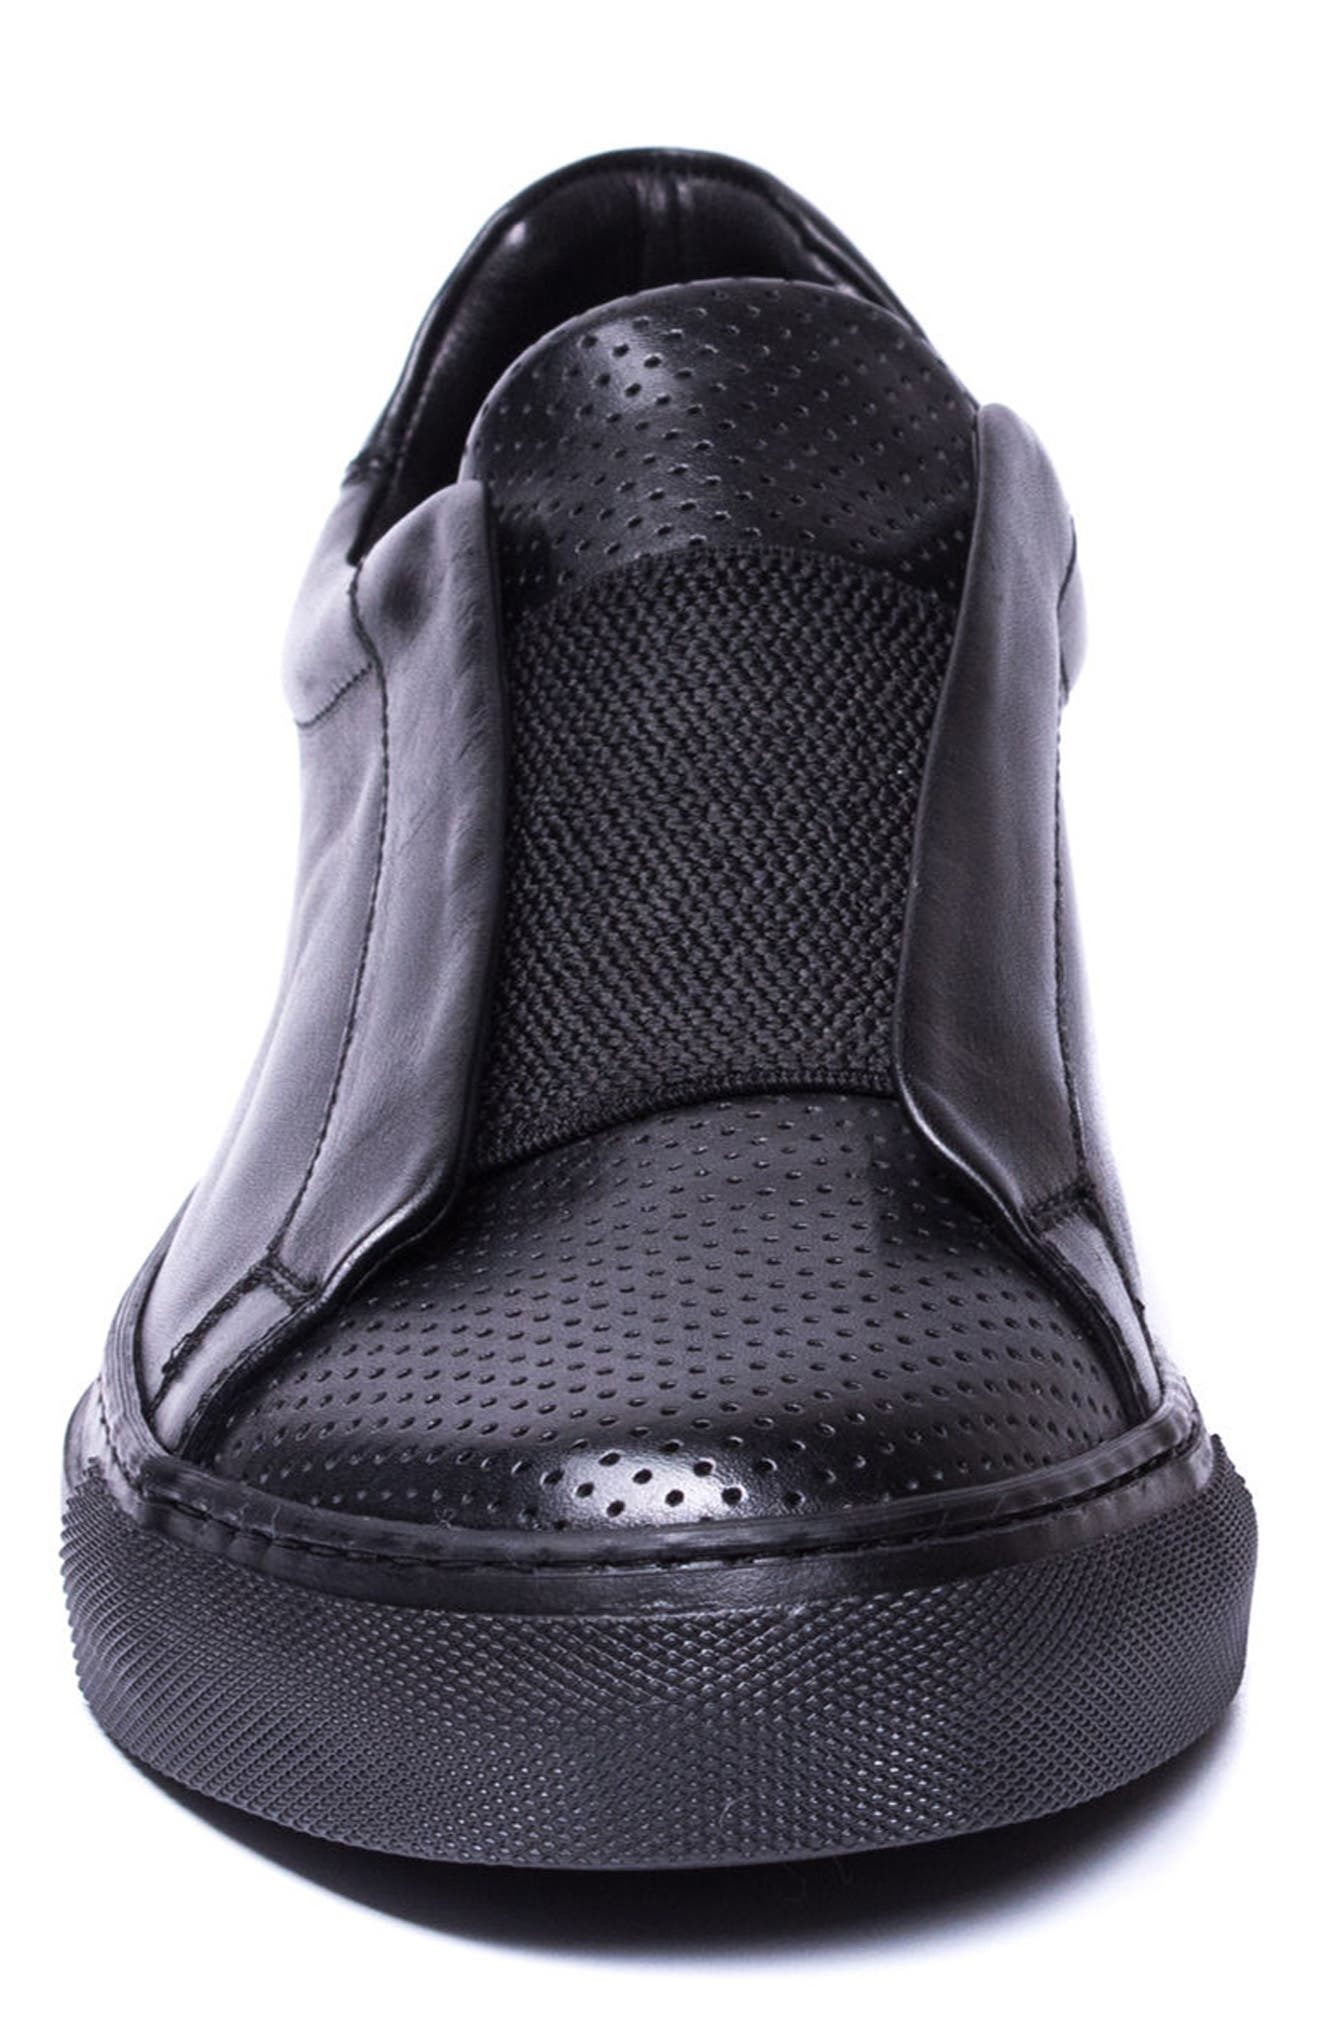 Mane Laceless Perforated Sneaker,                             Alternate thumbnail 4, color,                             BLACK LEATHER